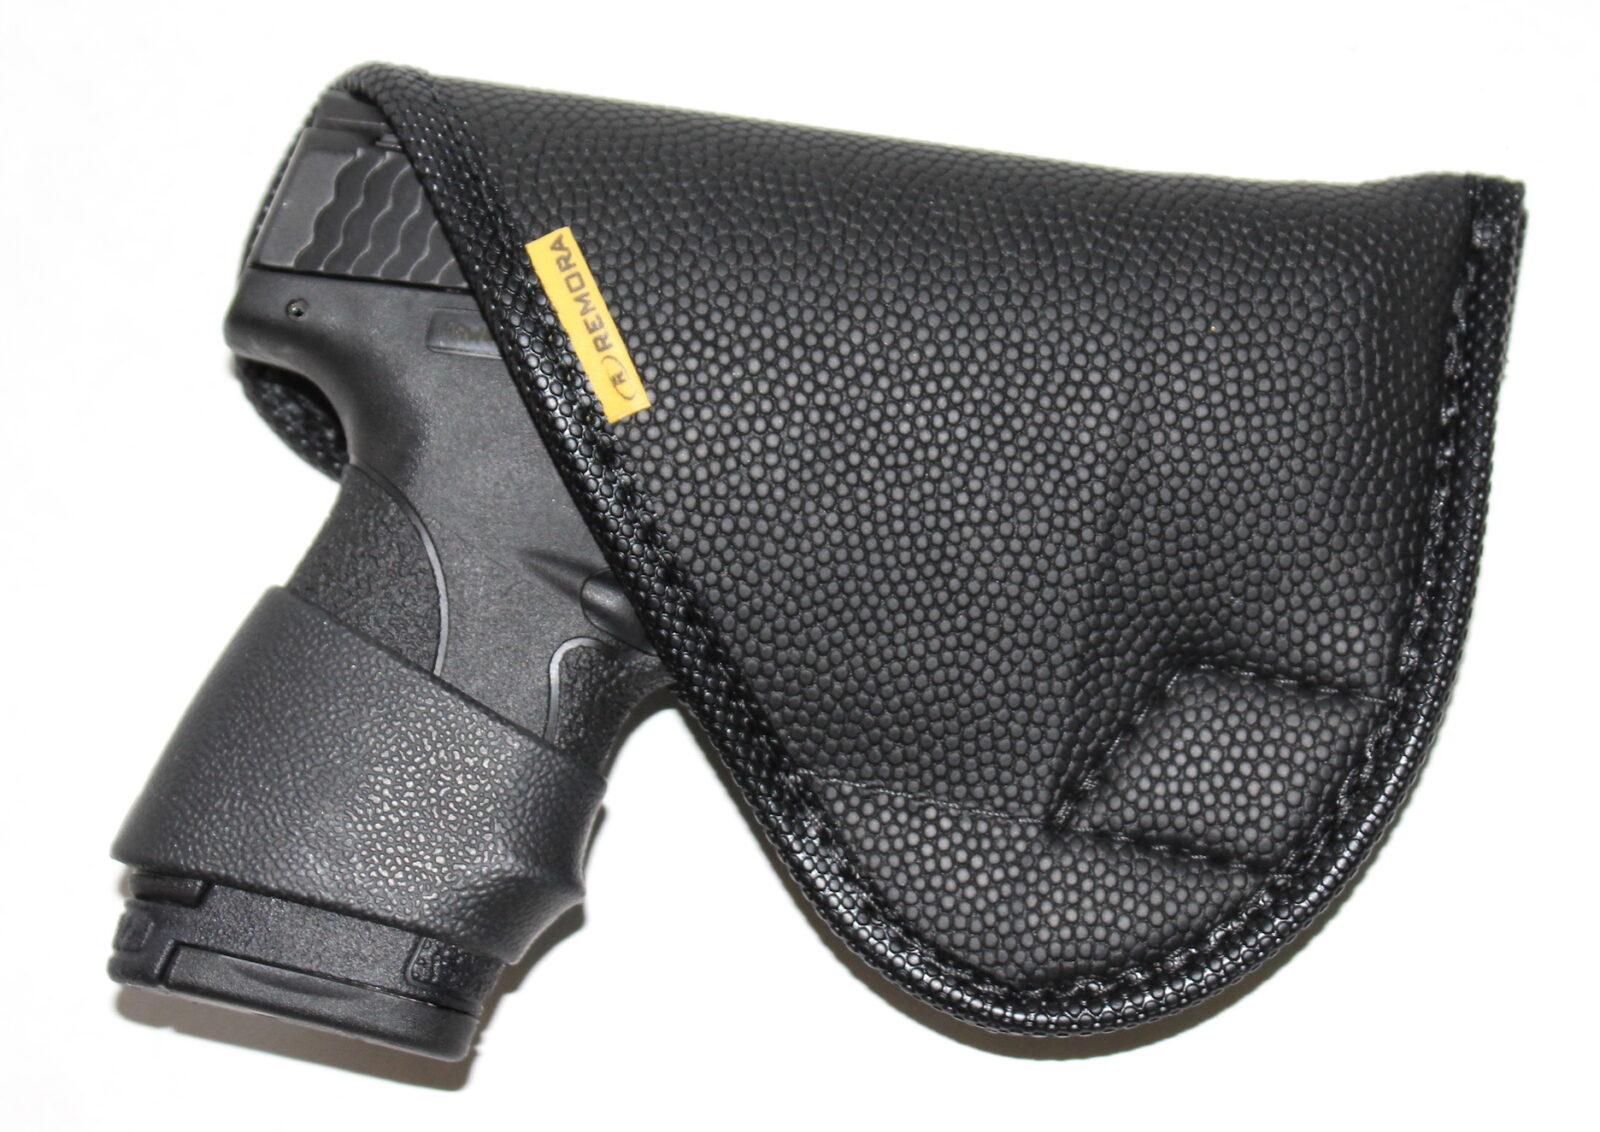 Remora (IWB) Inside The Waistband/Pocket GEN II Holster